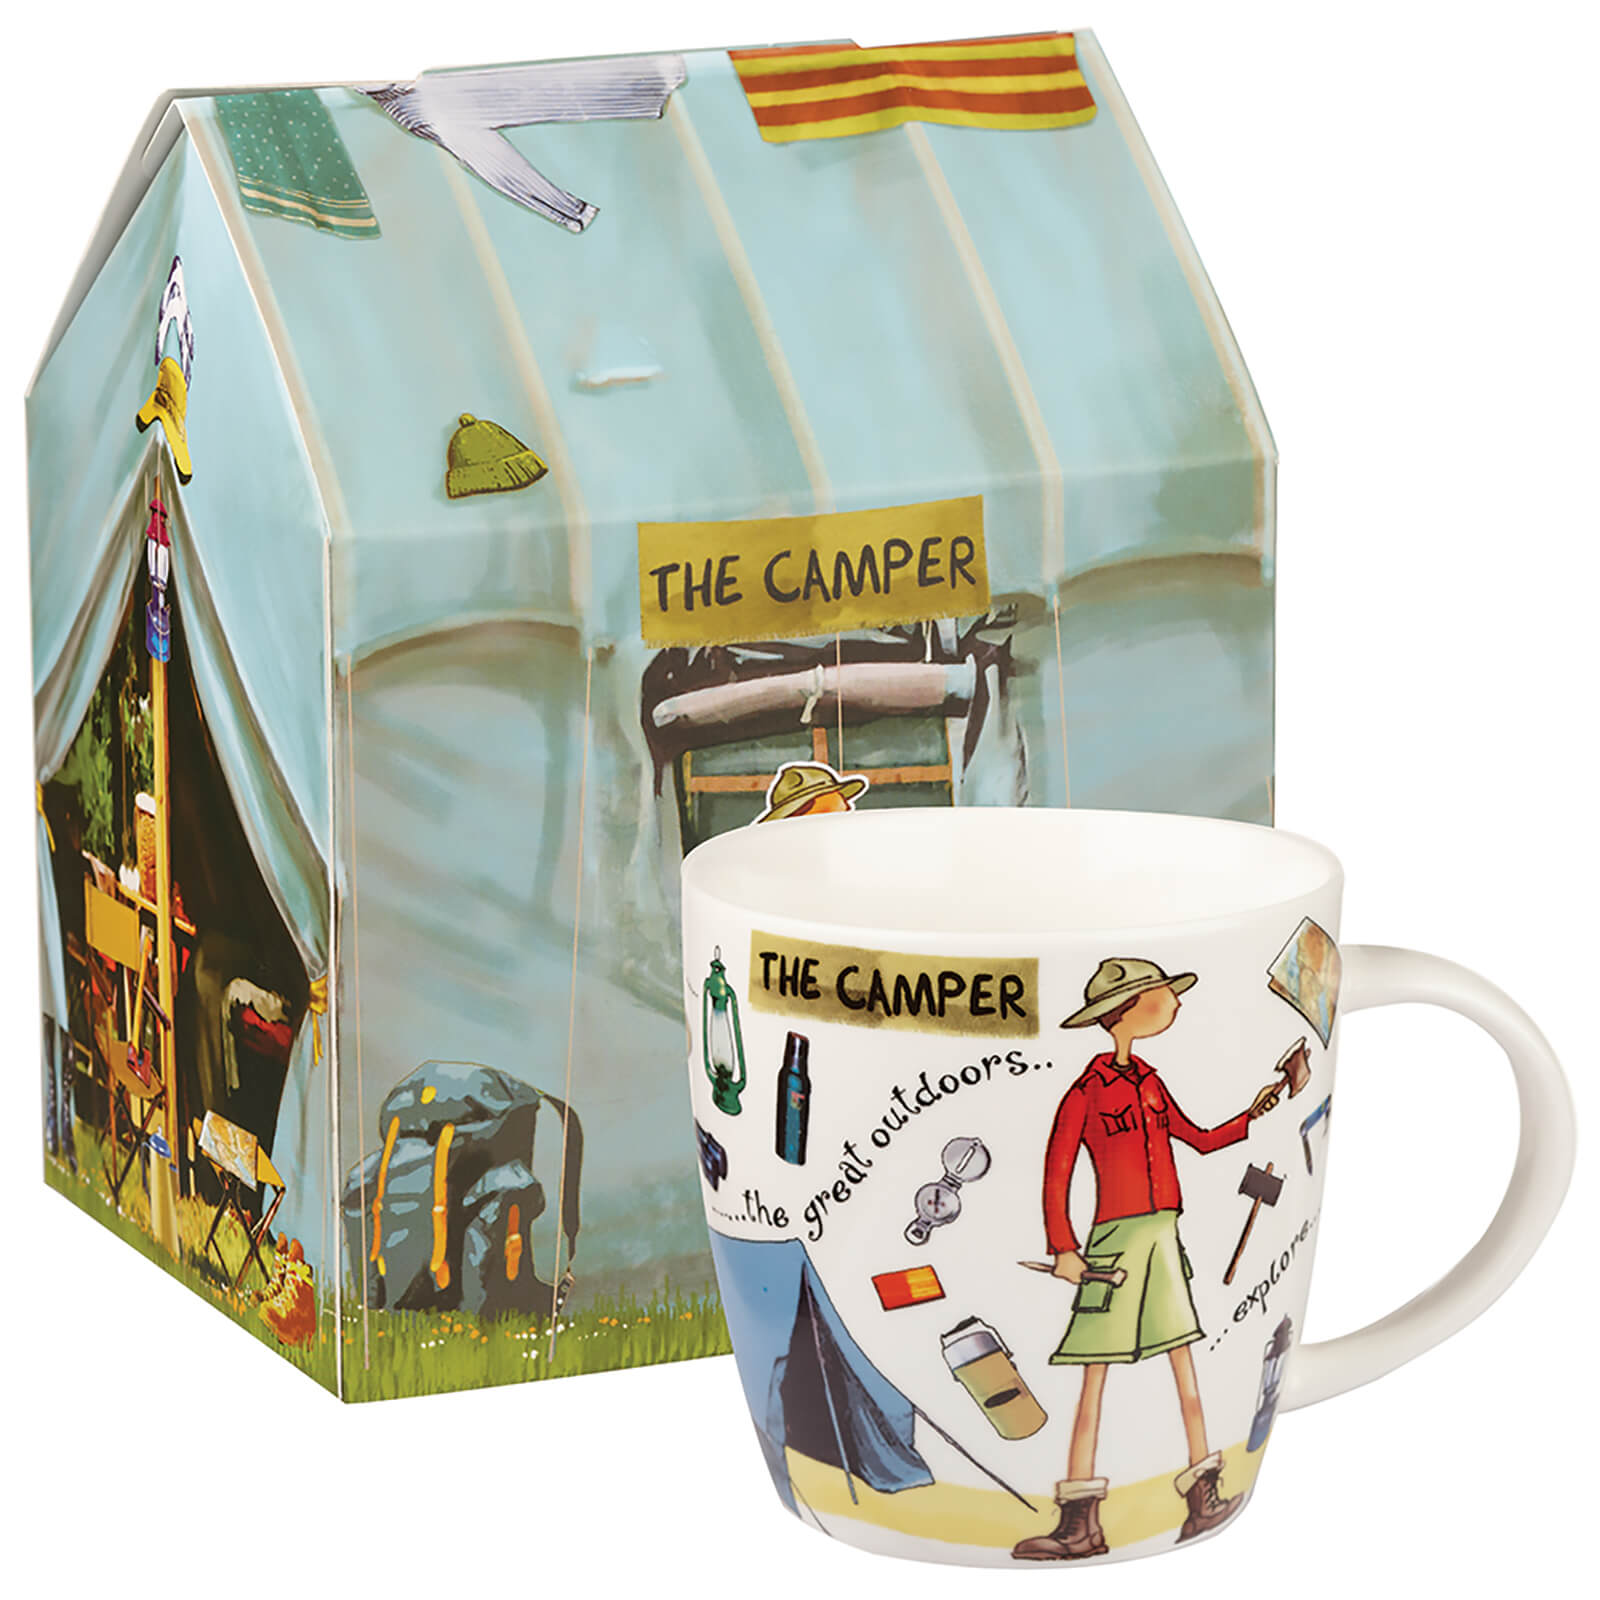 At Your Leisure Camper Mug